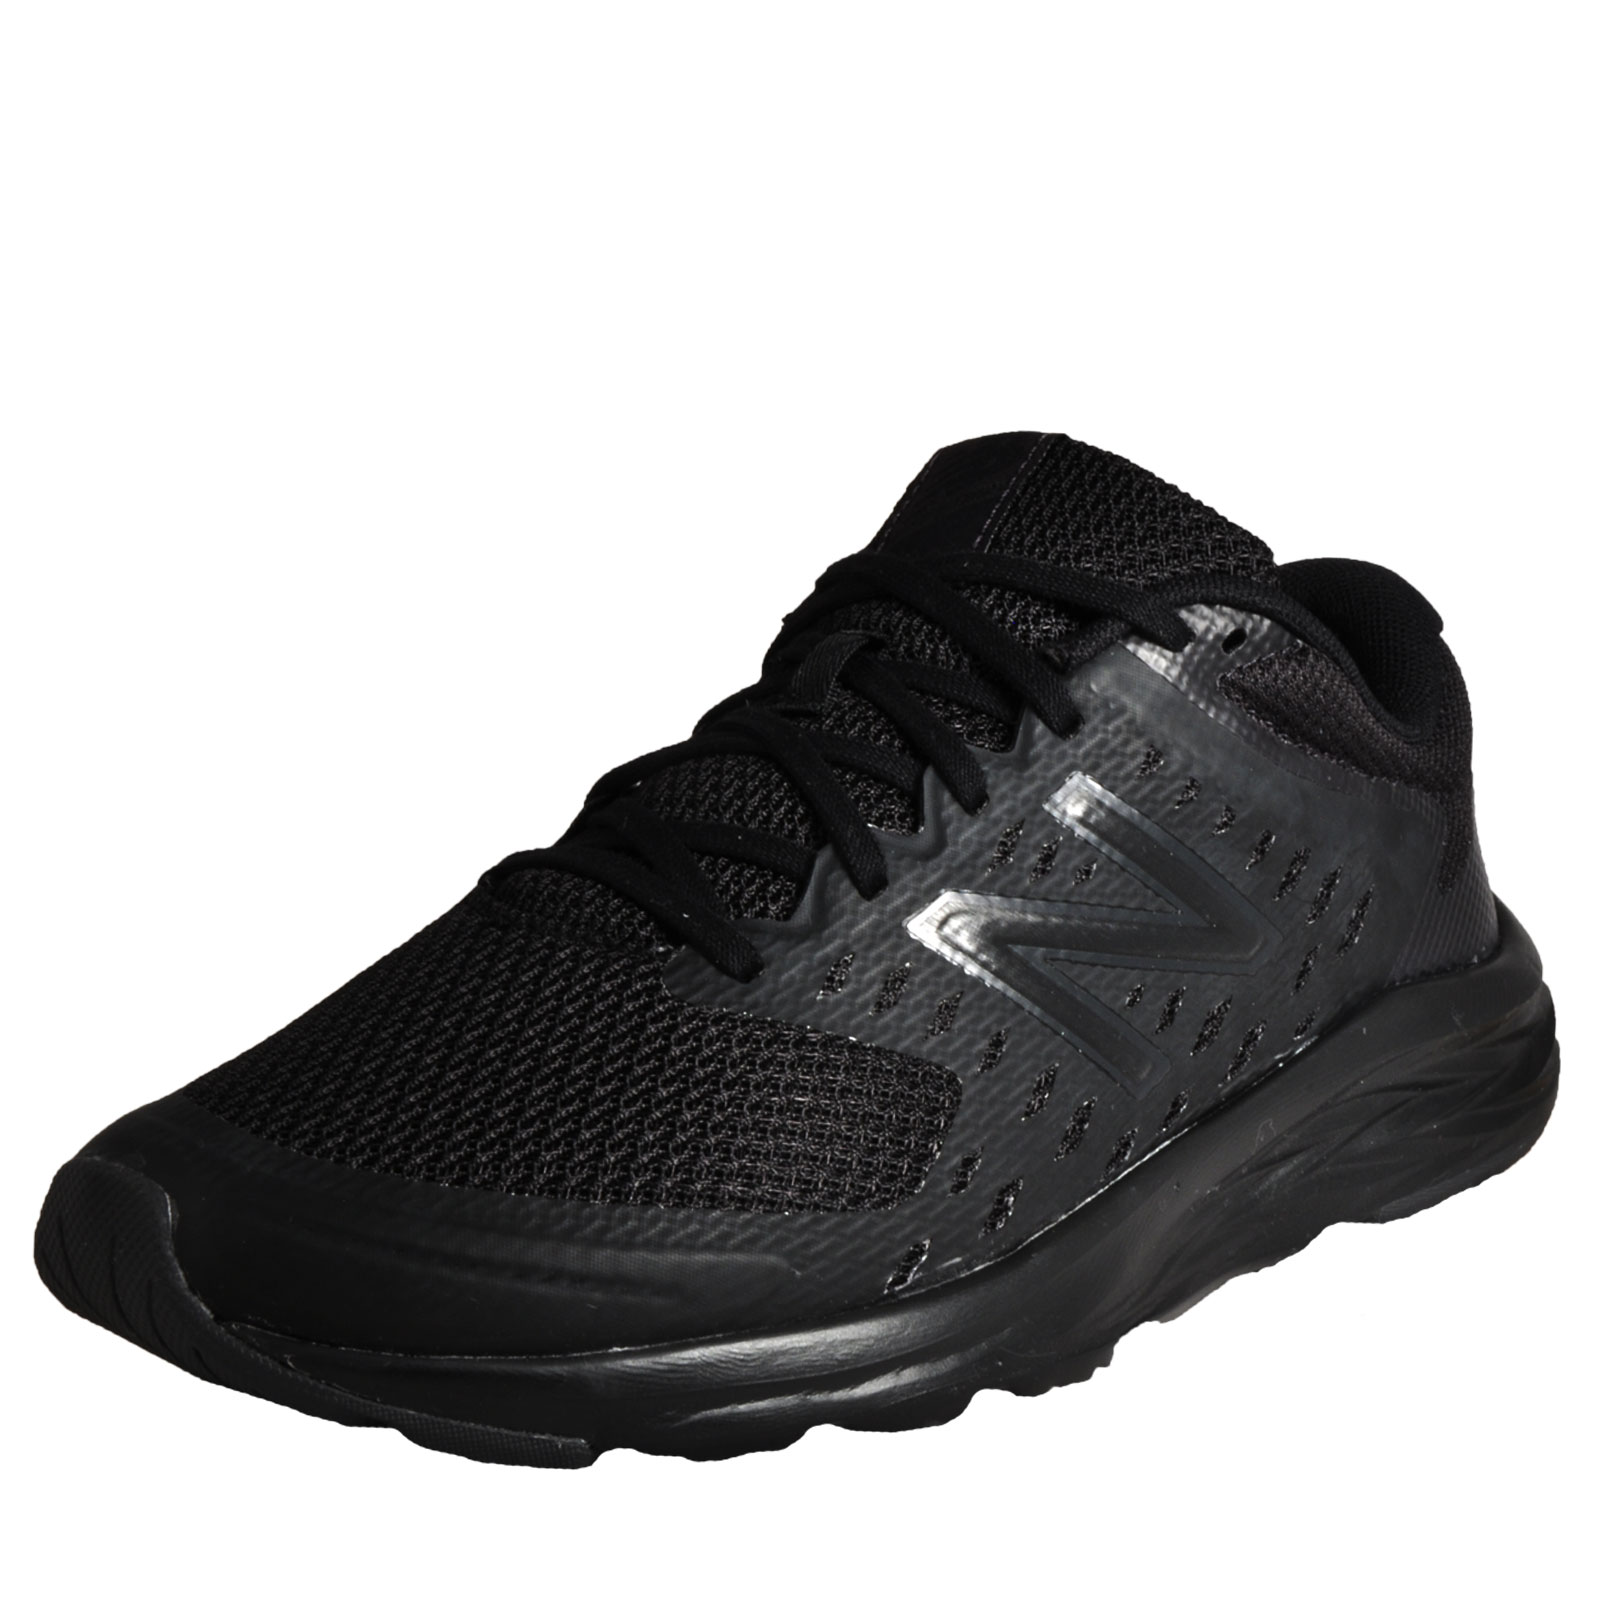 49366197a83f5 Details about New Balance M490 LK5 Mens Running Shoes Fitness Gym Workout  Trainers Black